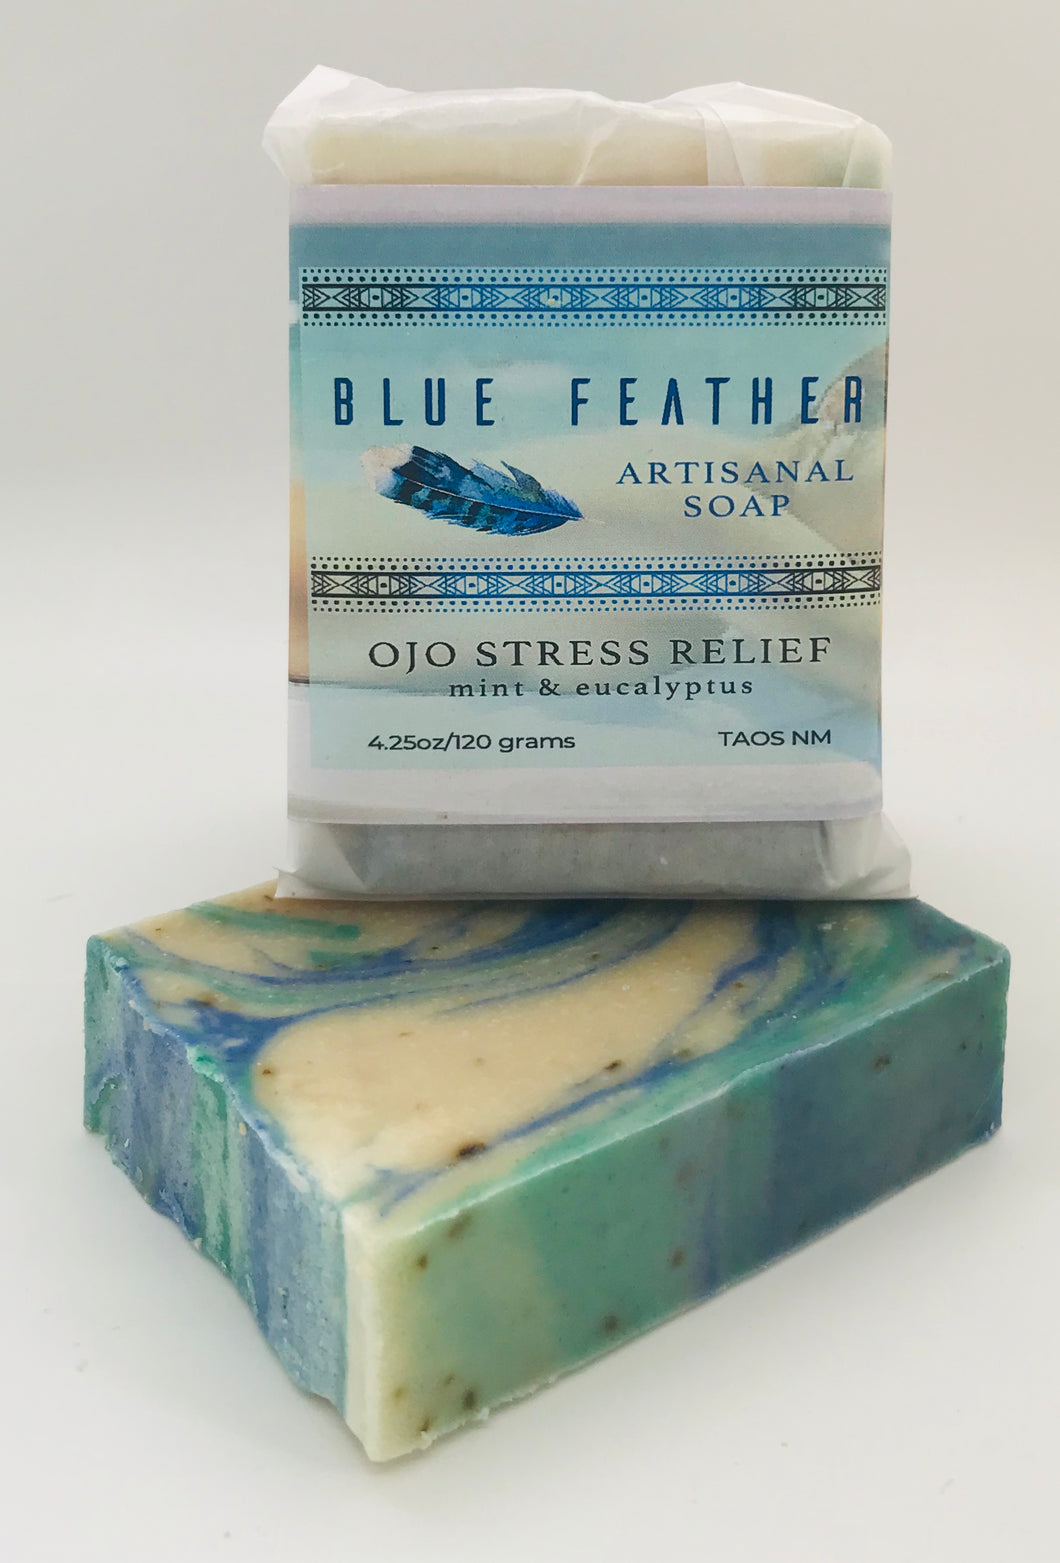 Ojo Stress Relief Handmade Soap